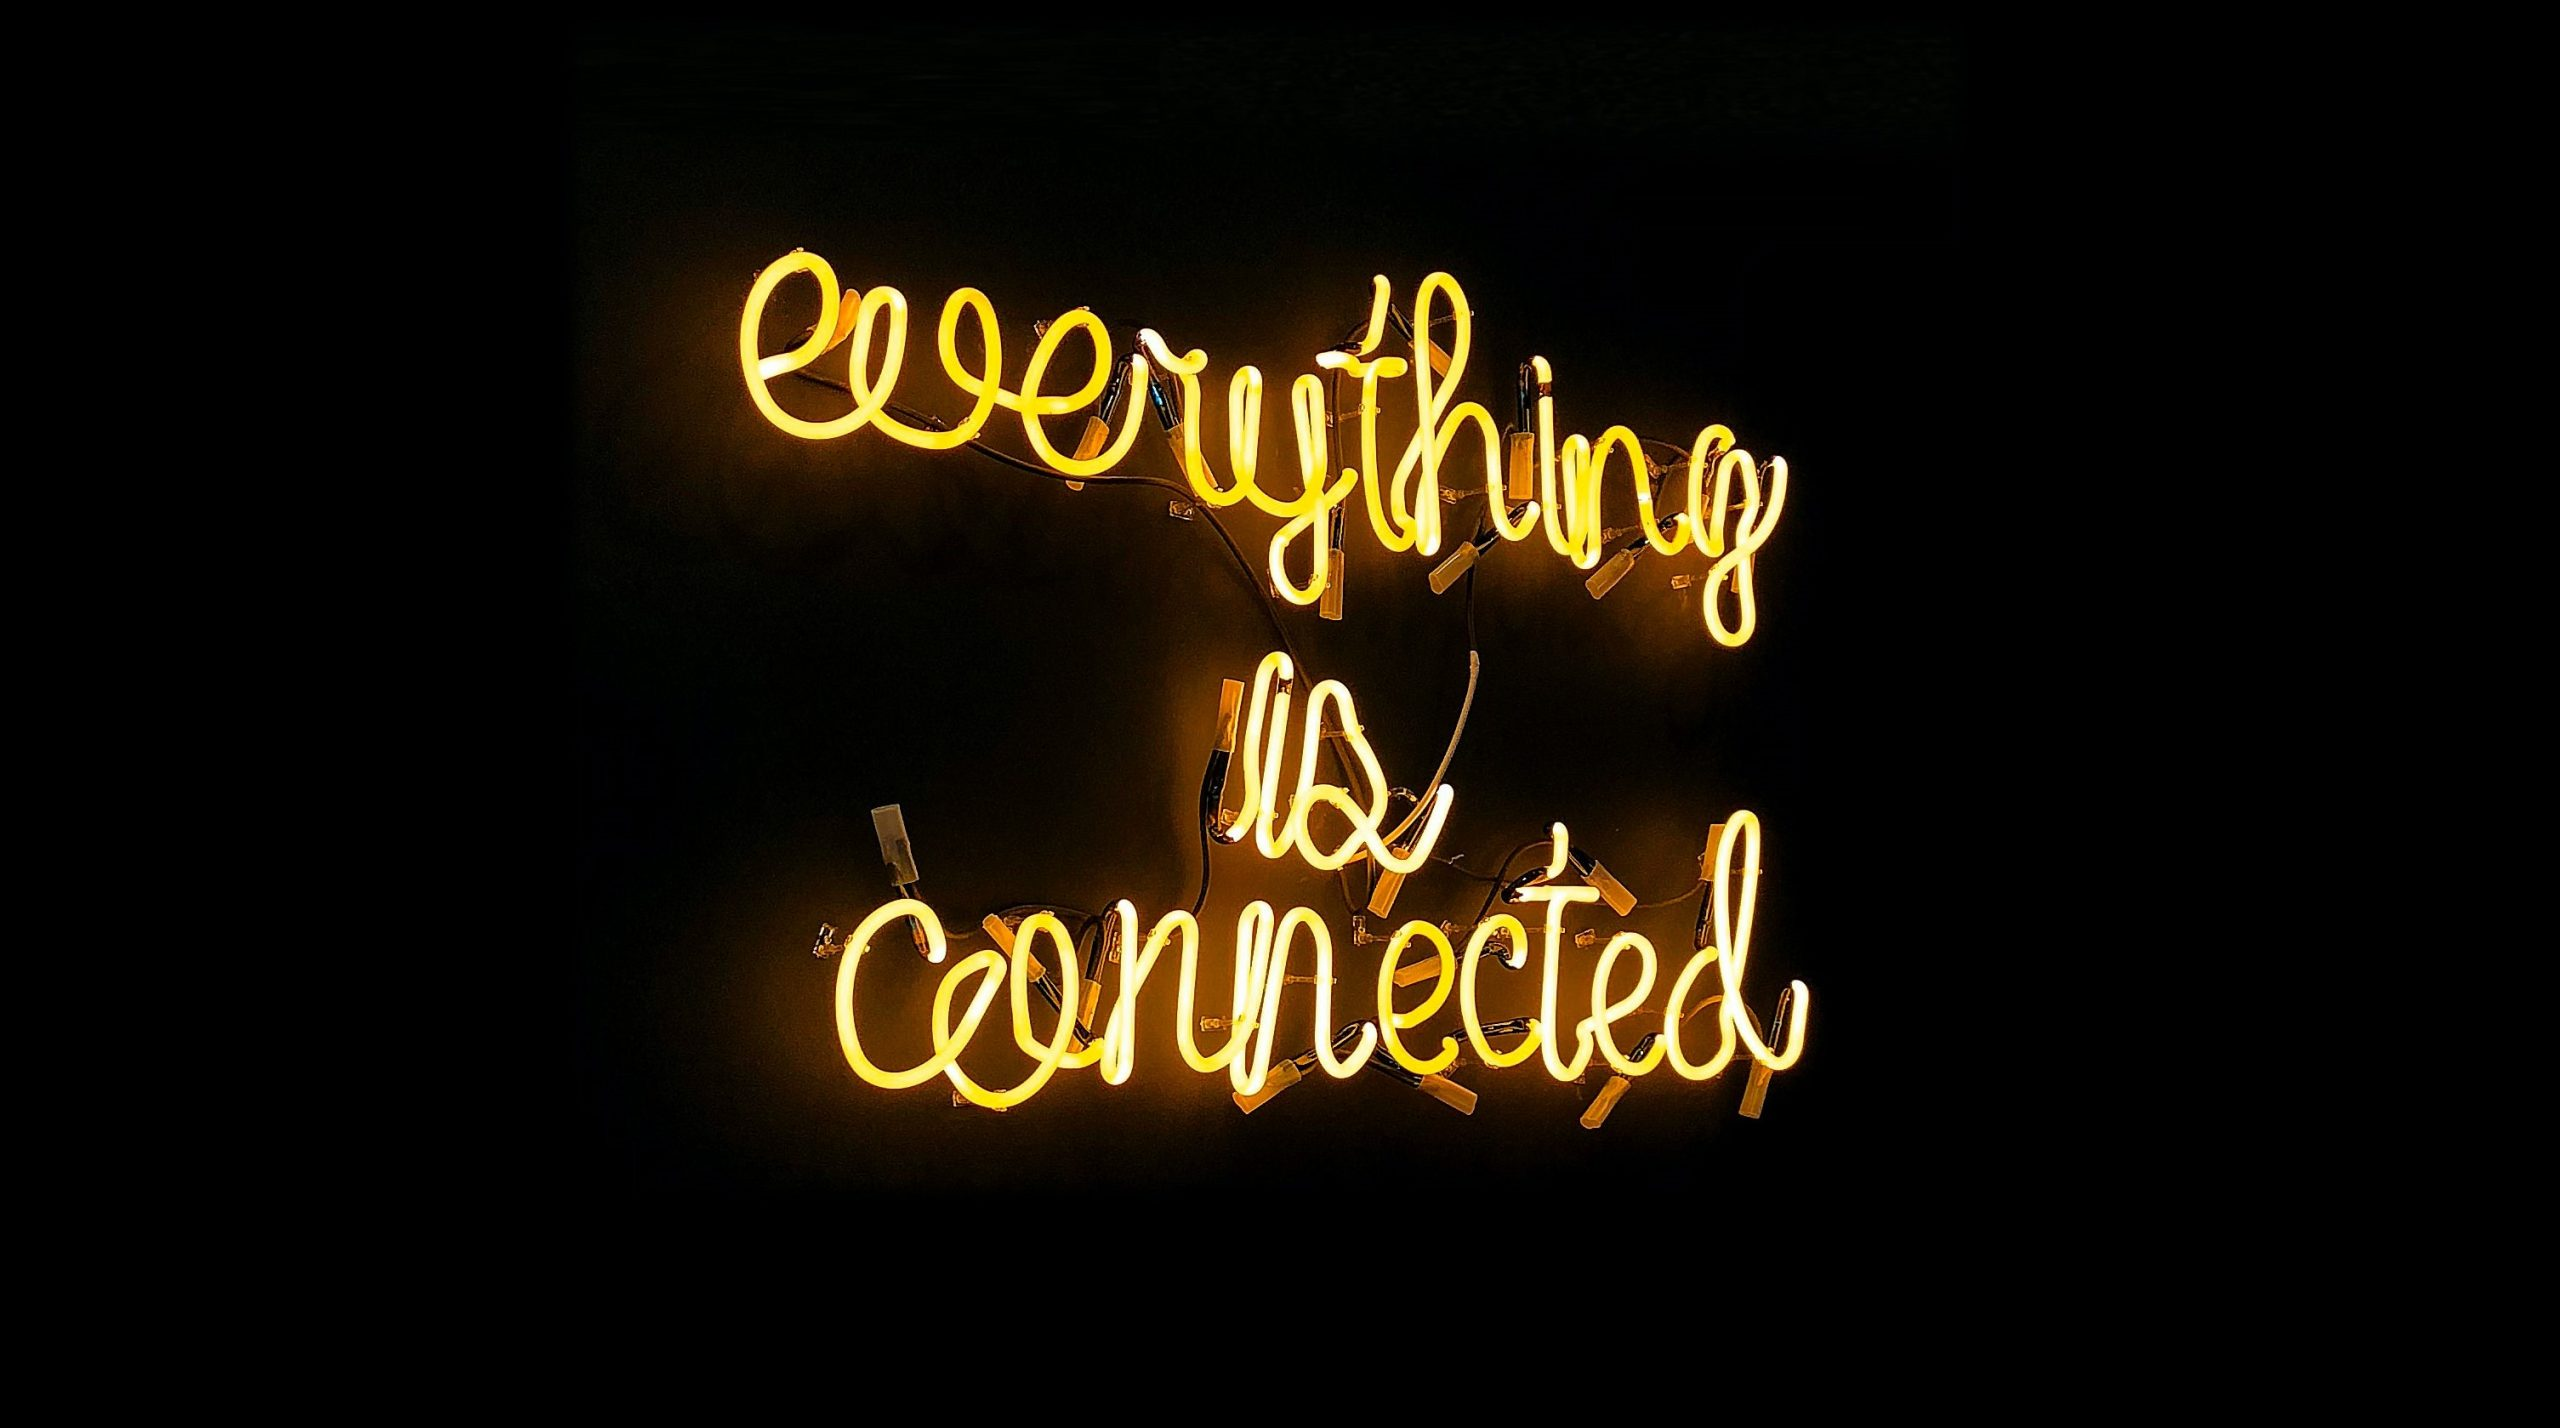 Everything is connected message